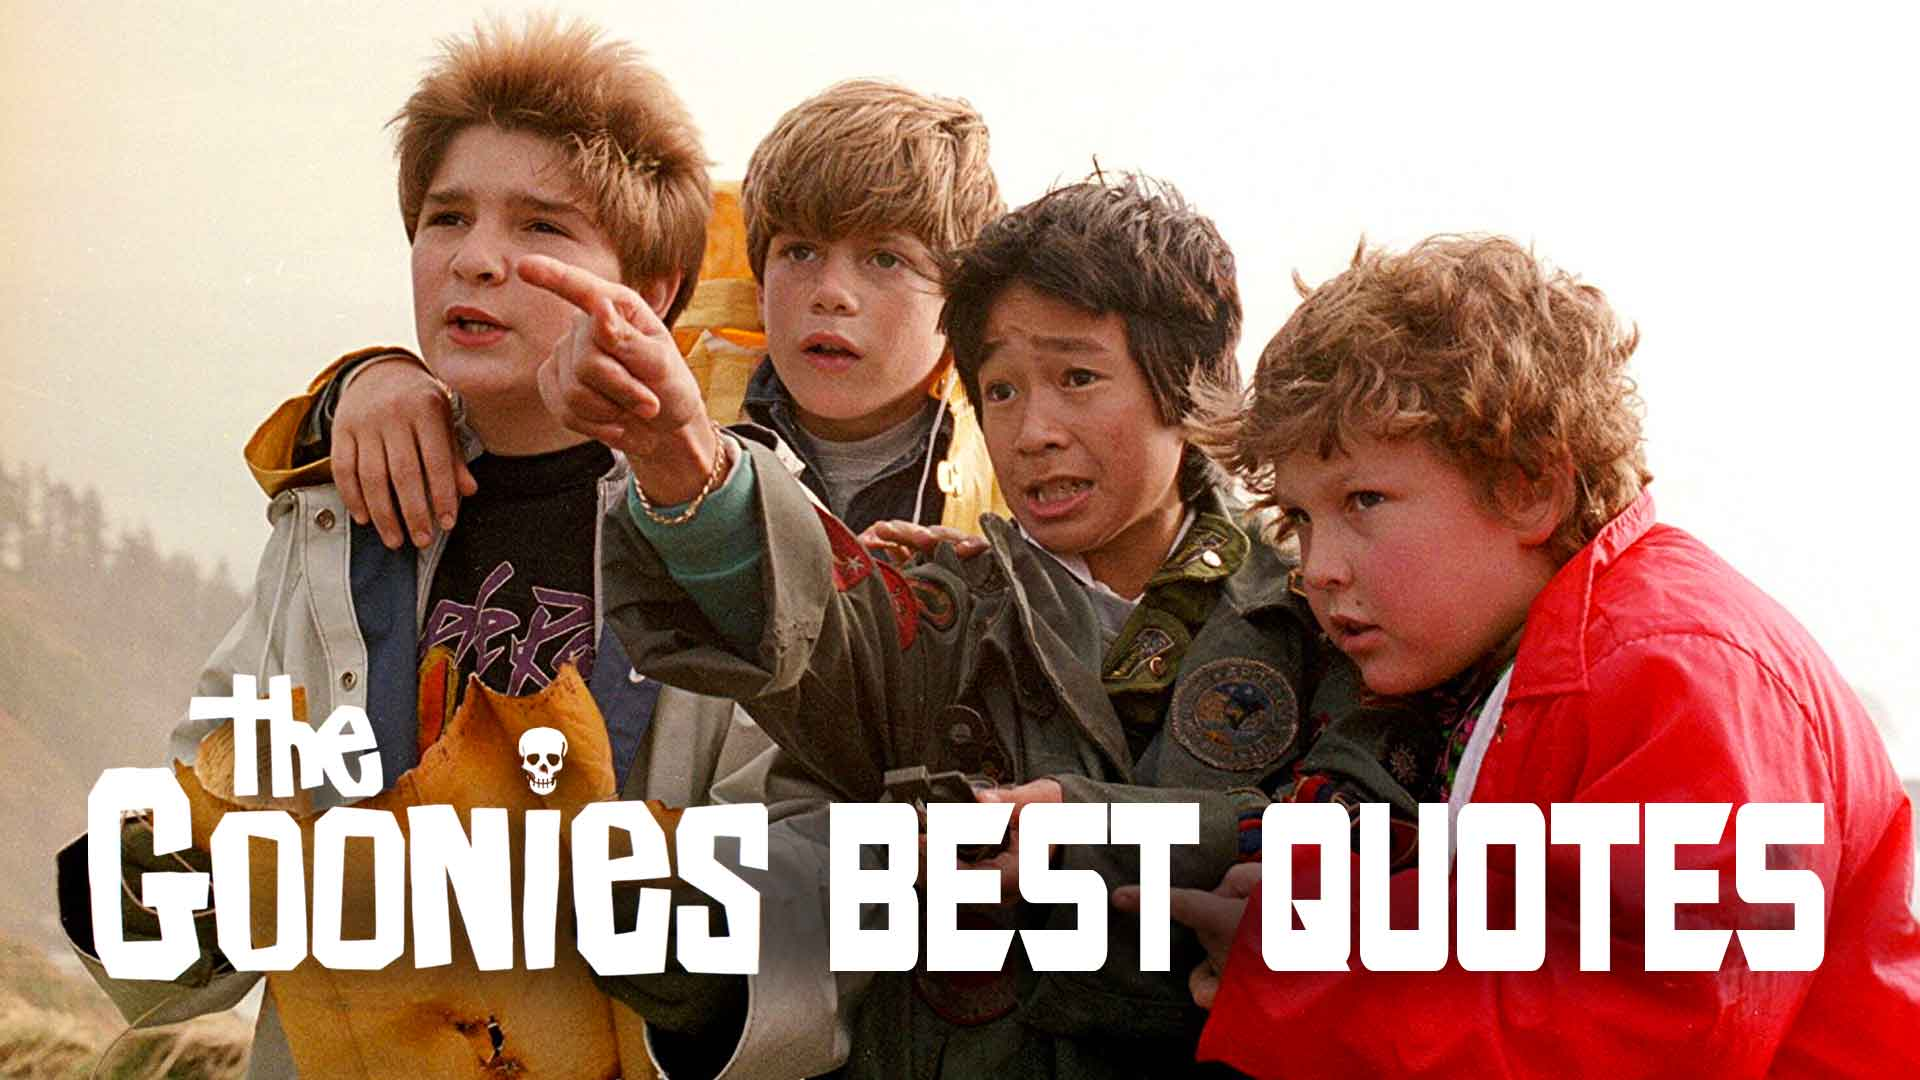 30 Awesome Goonies Quotes From Steven Spielberg's Classic Film